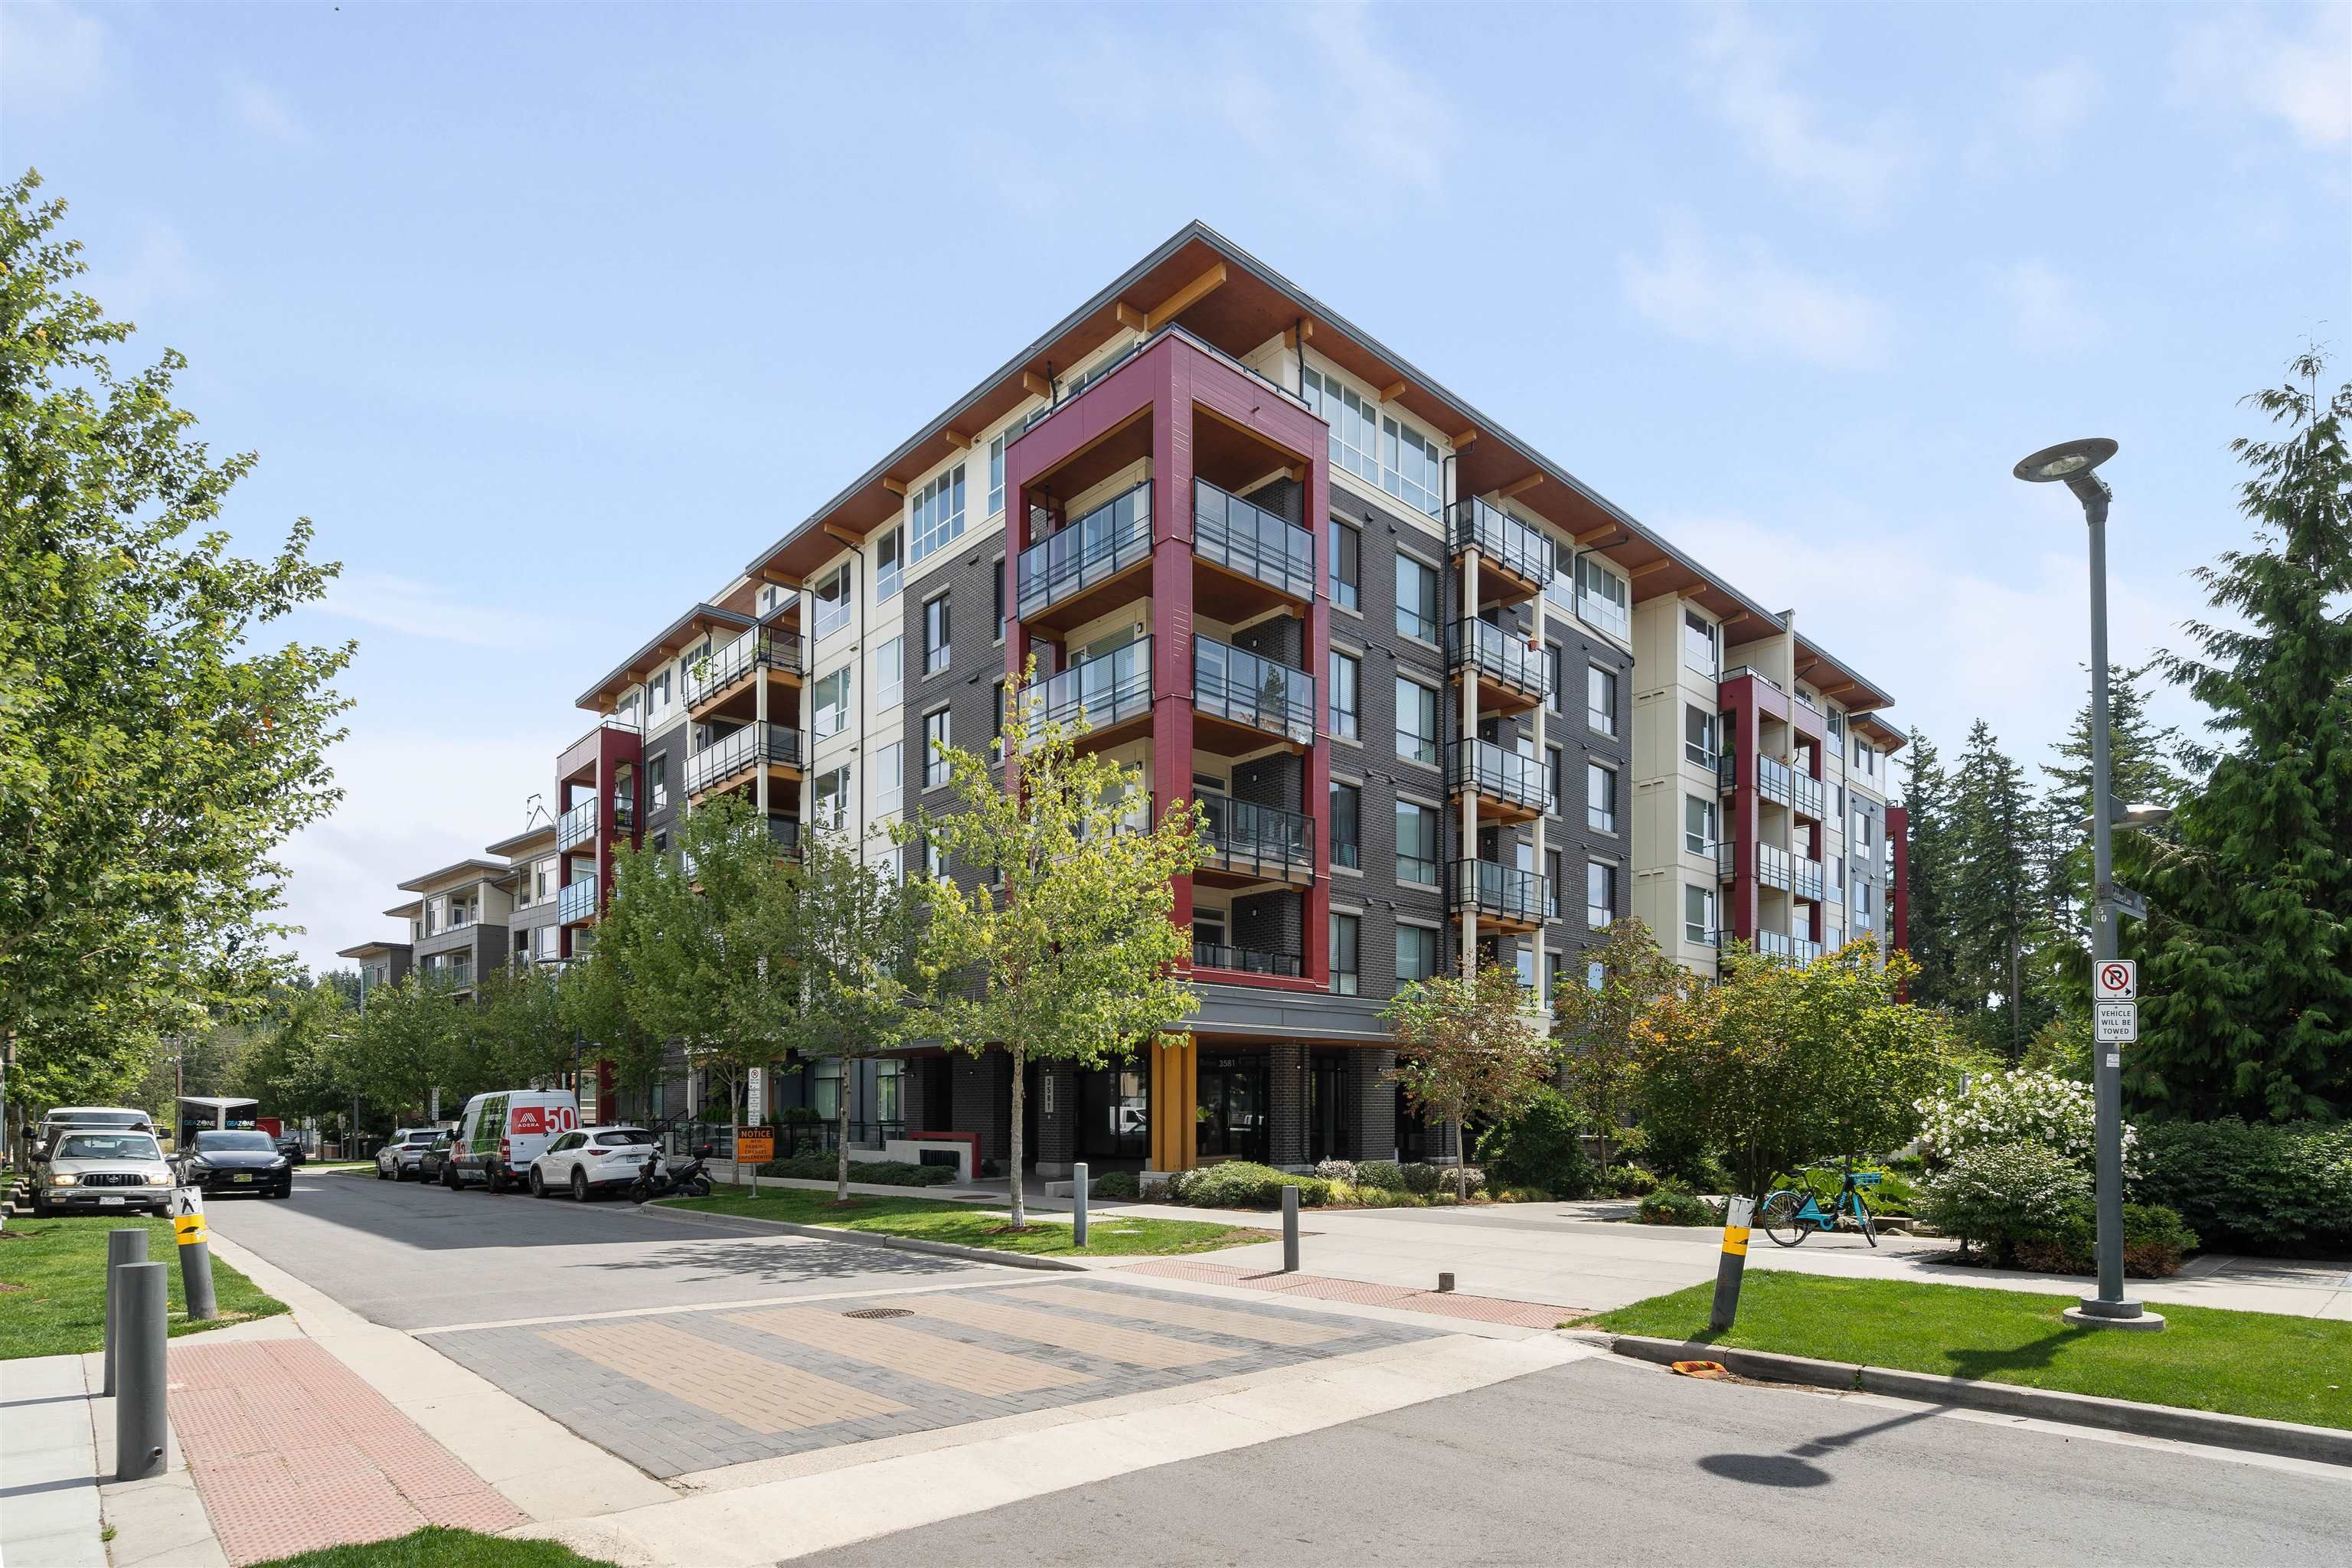 """Main Photo: 108 3581 ROSS Drive in Vancouver: University VW Condo for sale in """"Virtuoso"""" (Vancouver West)  : MLS®# R2609138"""